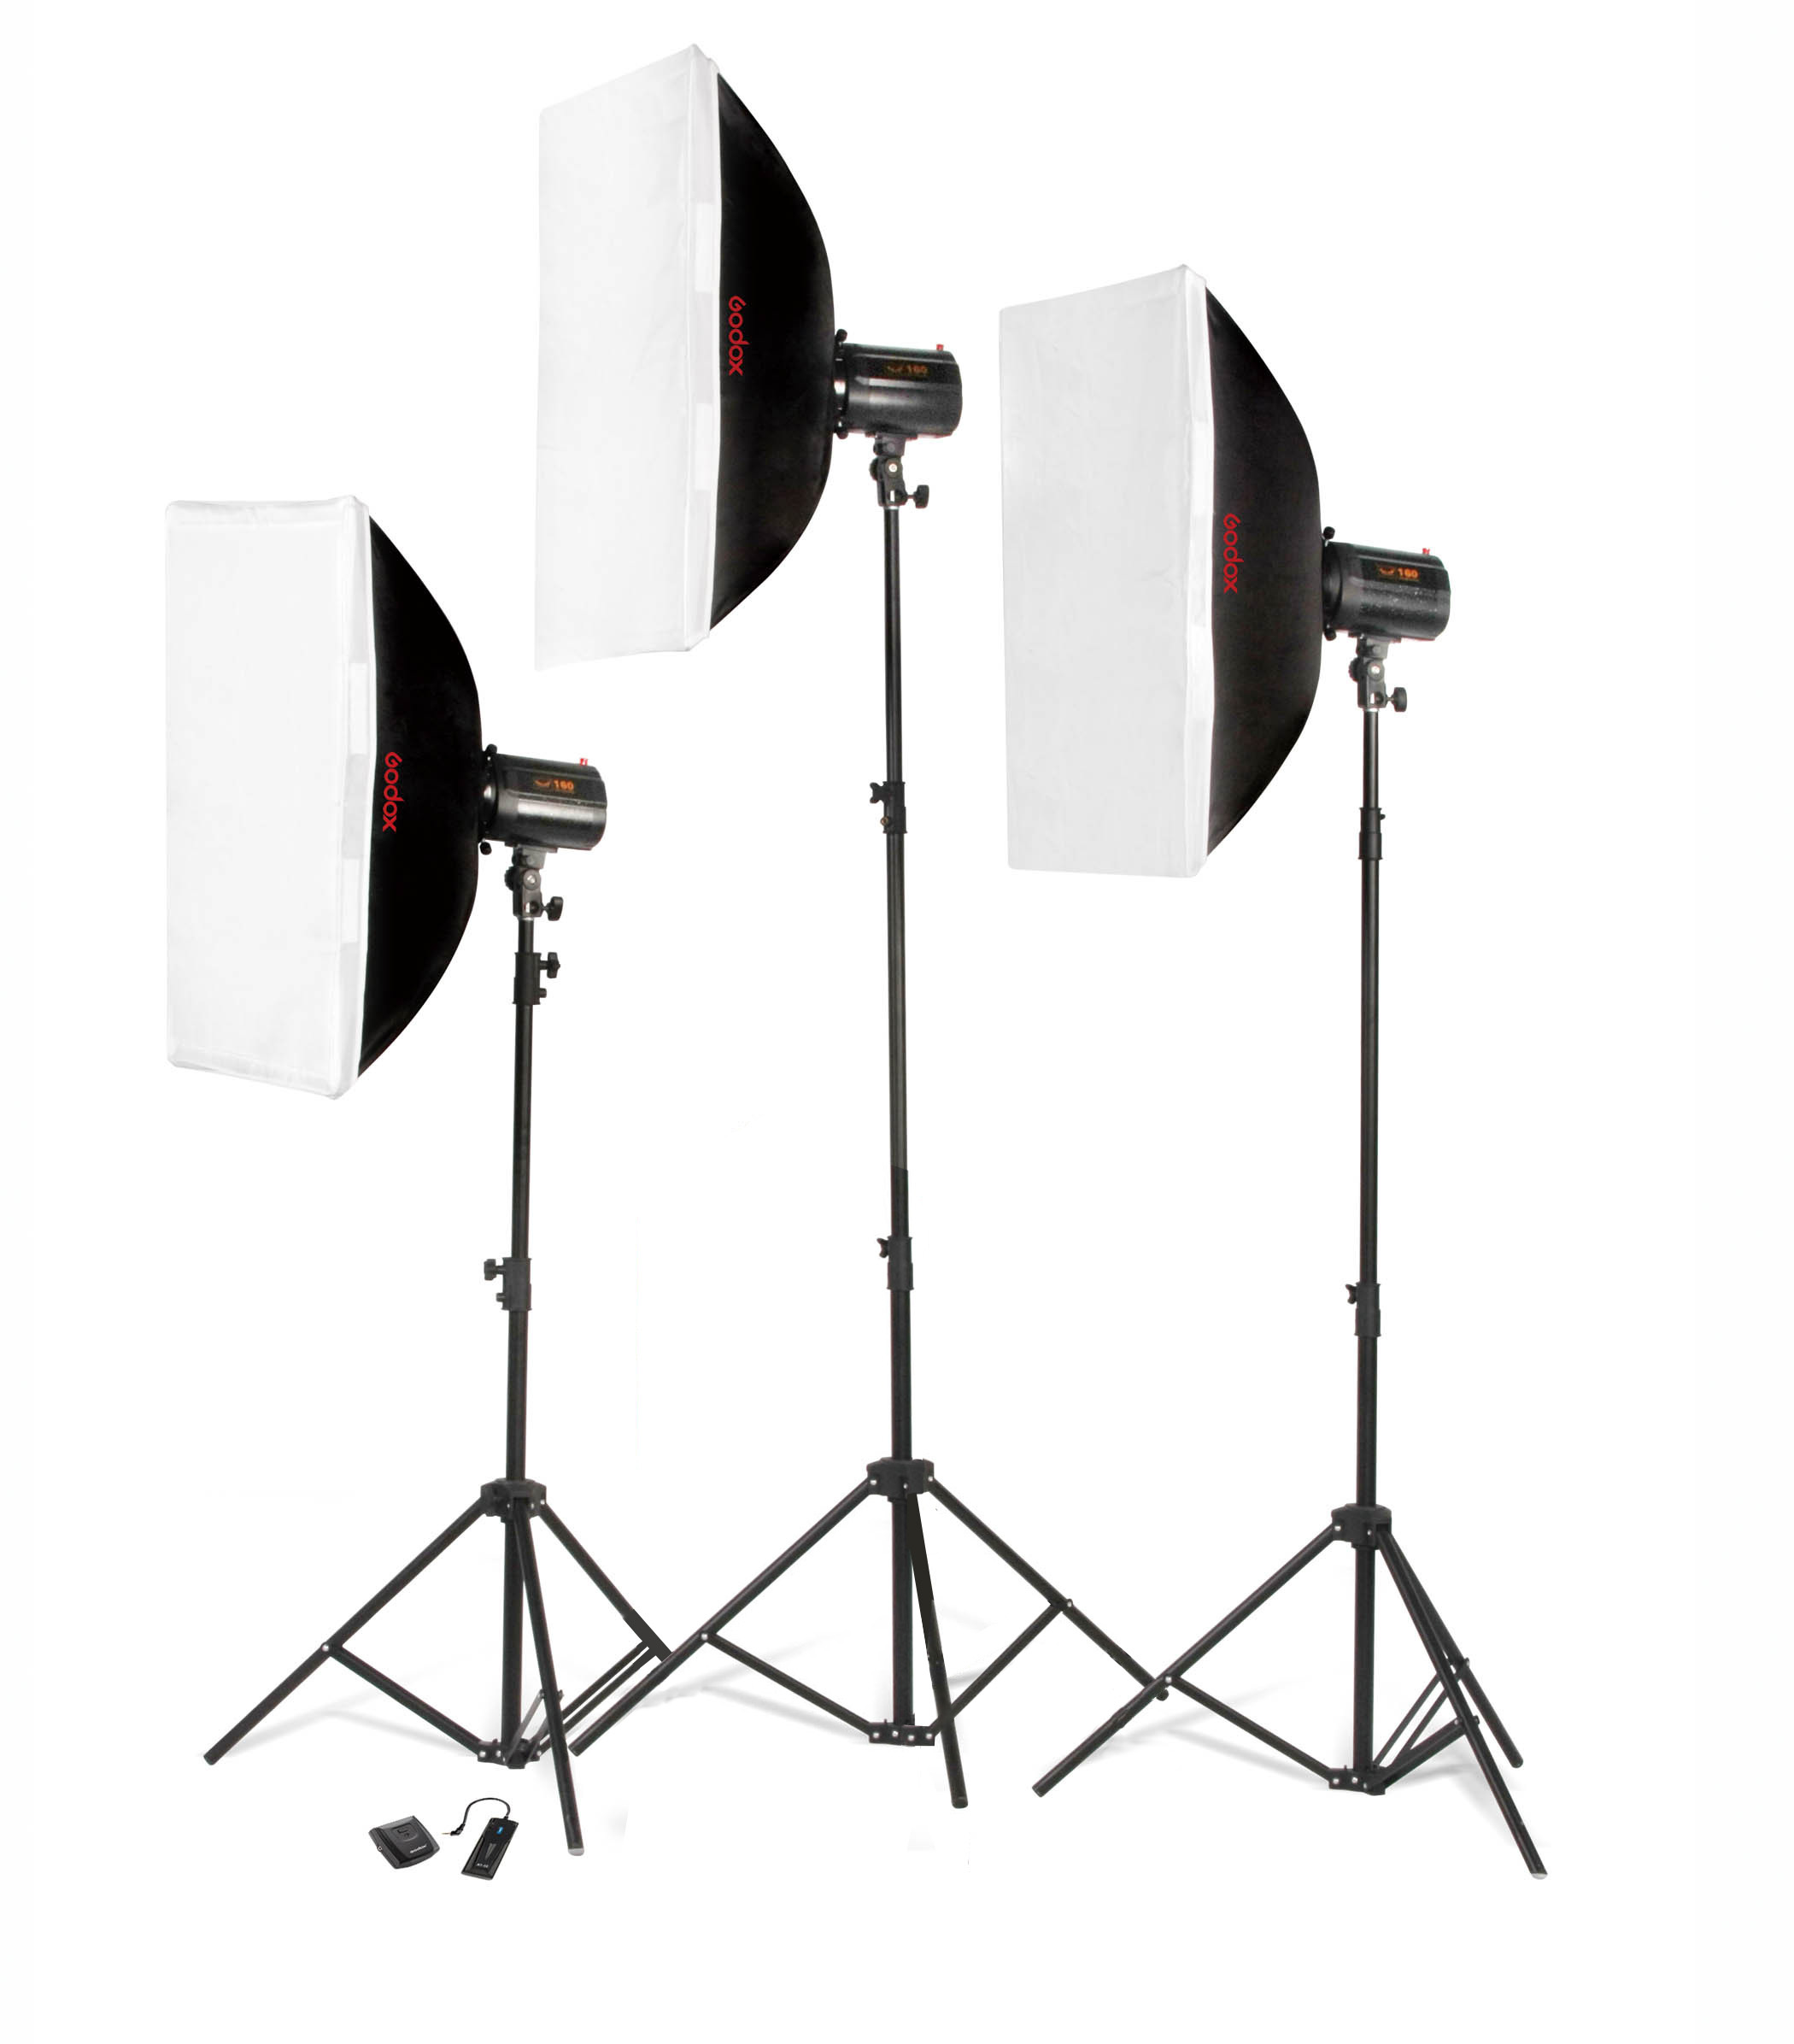 godox studio flash photography lighting set lamps camera ...